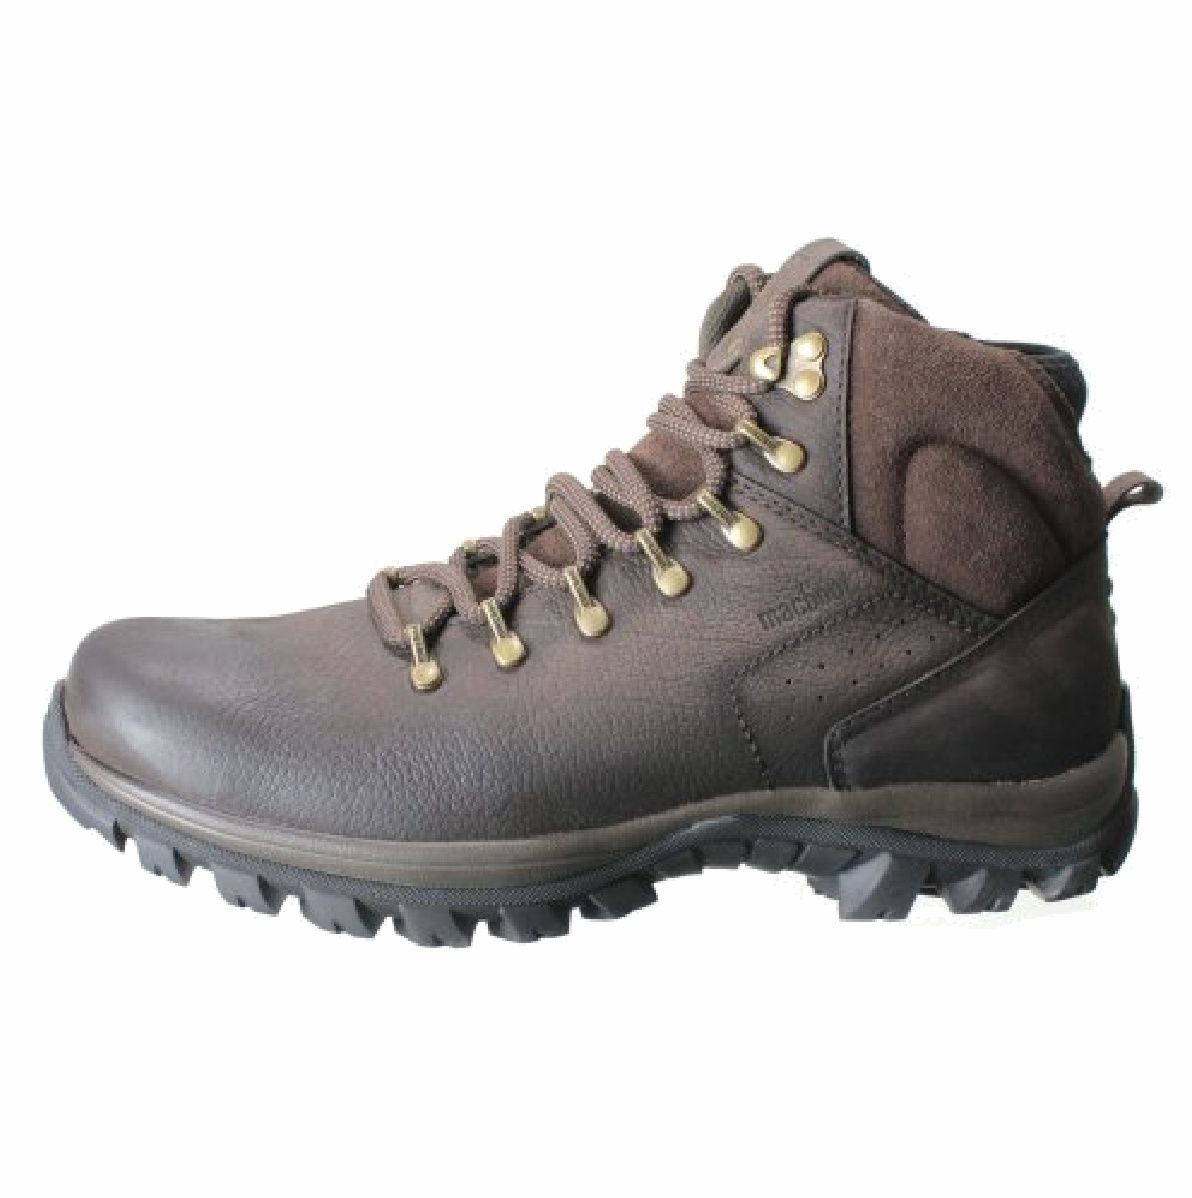 Bota Adventure Macboot Cobalto 02 Kraho Couro Cafe